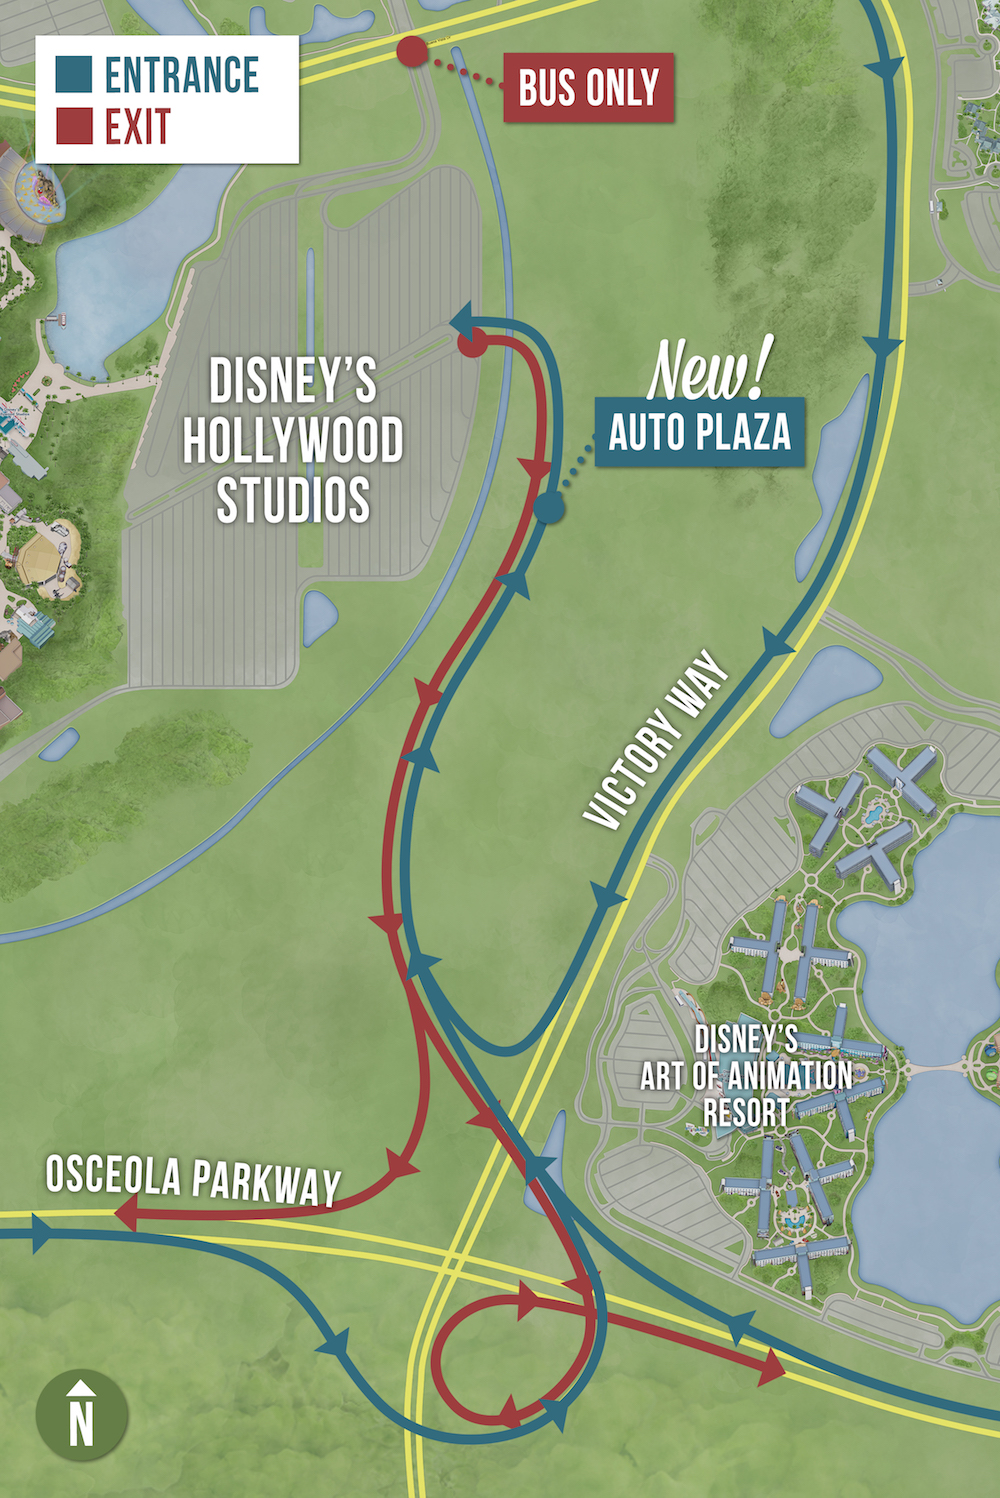 New Automobile Entrance at Disney's Hollywood Studios Opens Nov. 8 Continuing Park's Arrival Experience Transformation